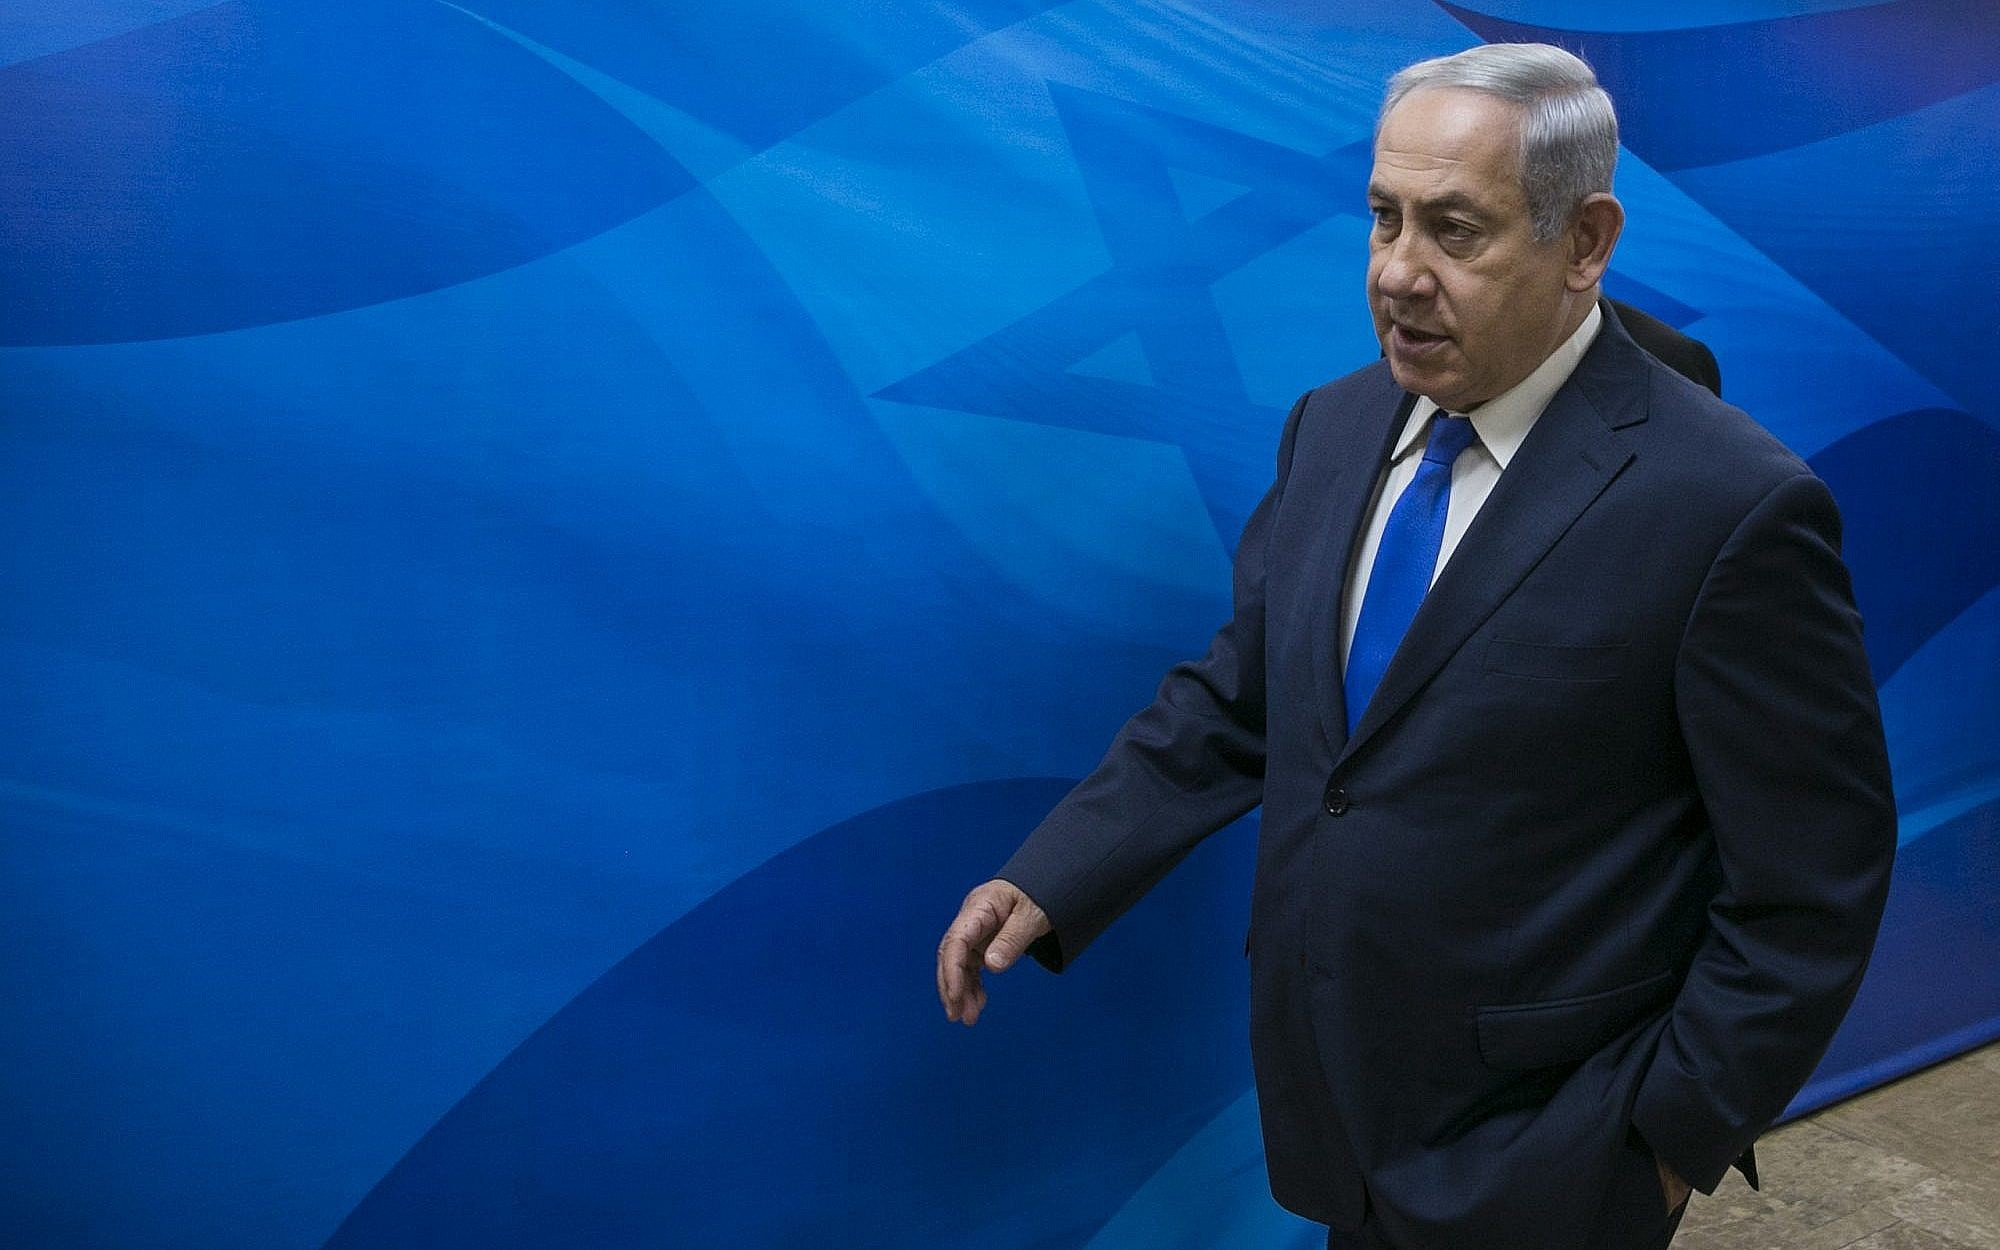 Police Question Israeli PM Netanyahu Over Alleged Corruption